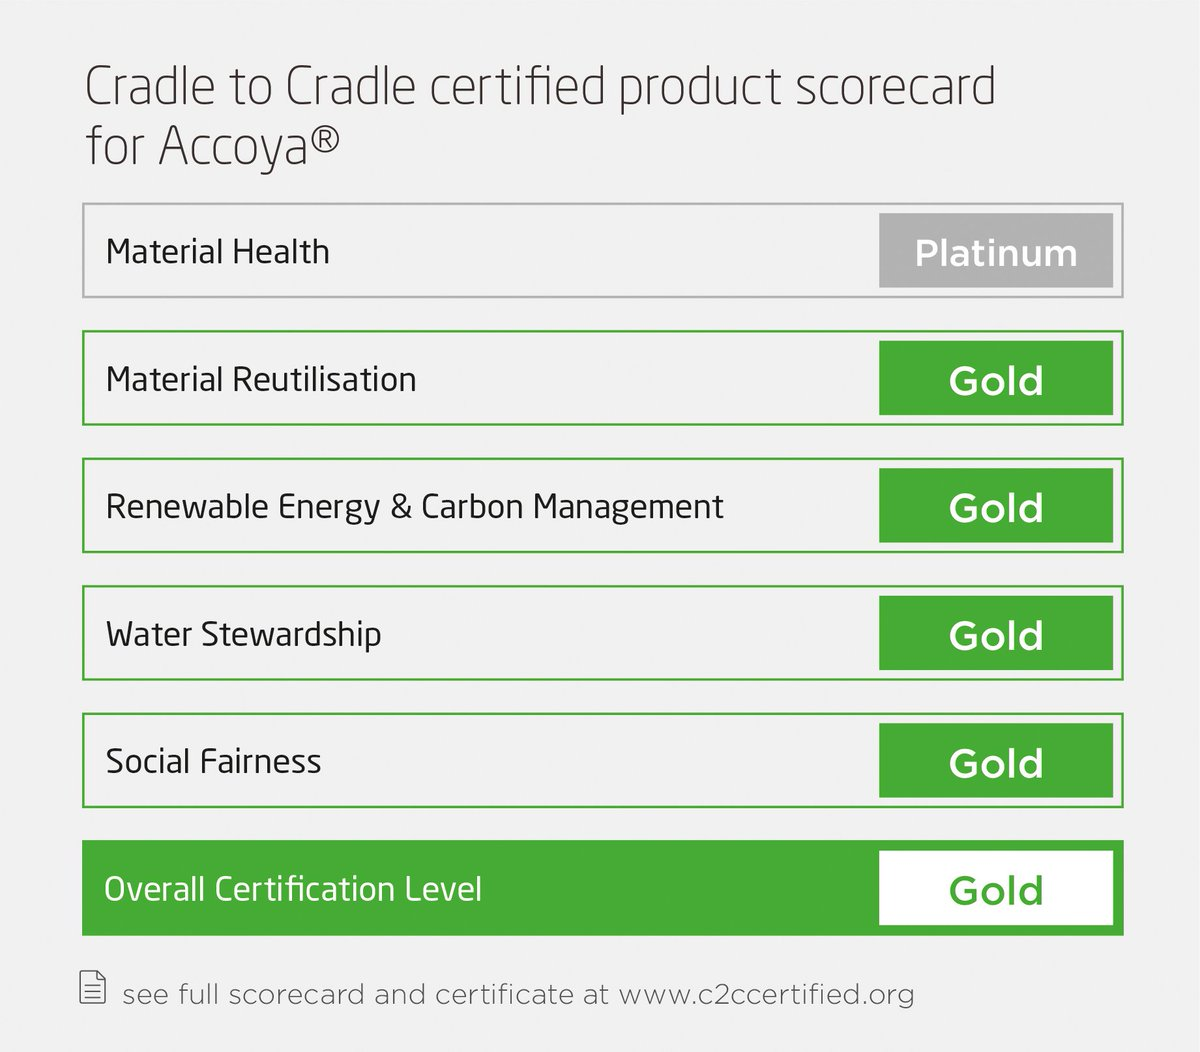 Accoya Wood Successfully Recertified with @CradletoCradle   #Gold #certification #Sustainability #eco #savetheplanet  http:// bit.ly/2uloasz  &nbsp;  <br>http://pic.twitter.com/ybGfqR6OsQ